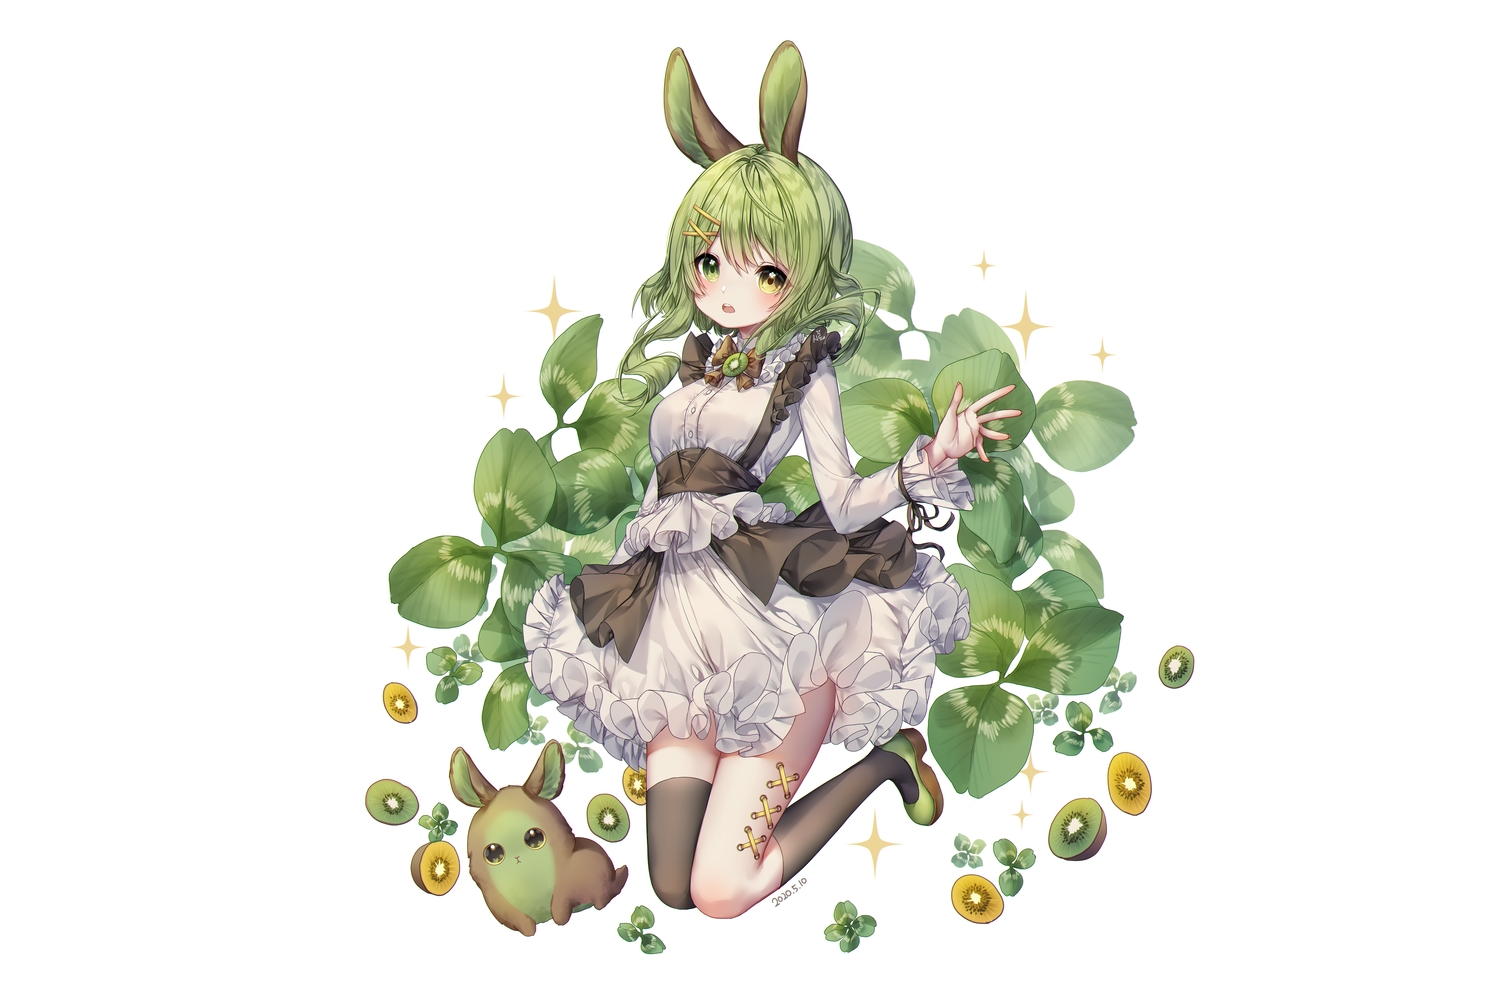 albinoraccoon animal animal_ears bicolored_eyes blush bow bunny_ears bunnygirl dress food fruit goth-loli green_hair lolita_fashion original rabbit short_hair thighhighs white